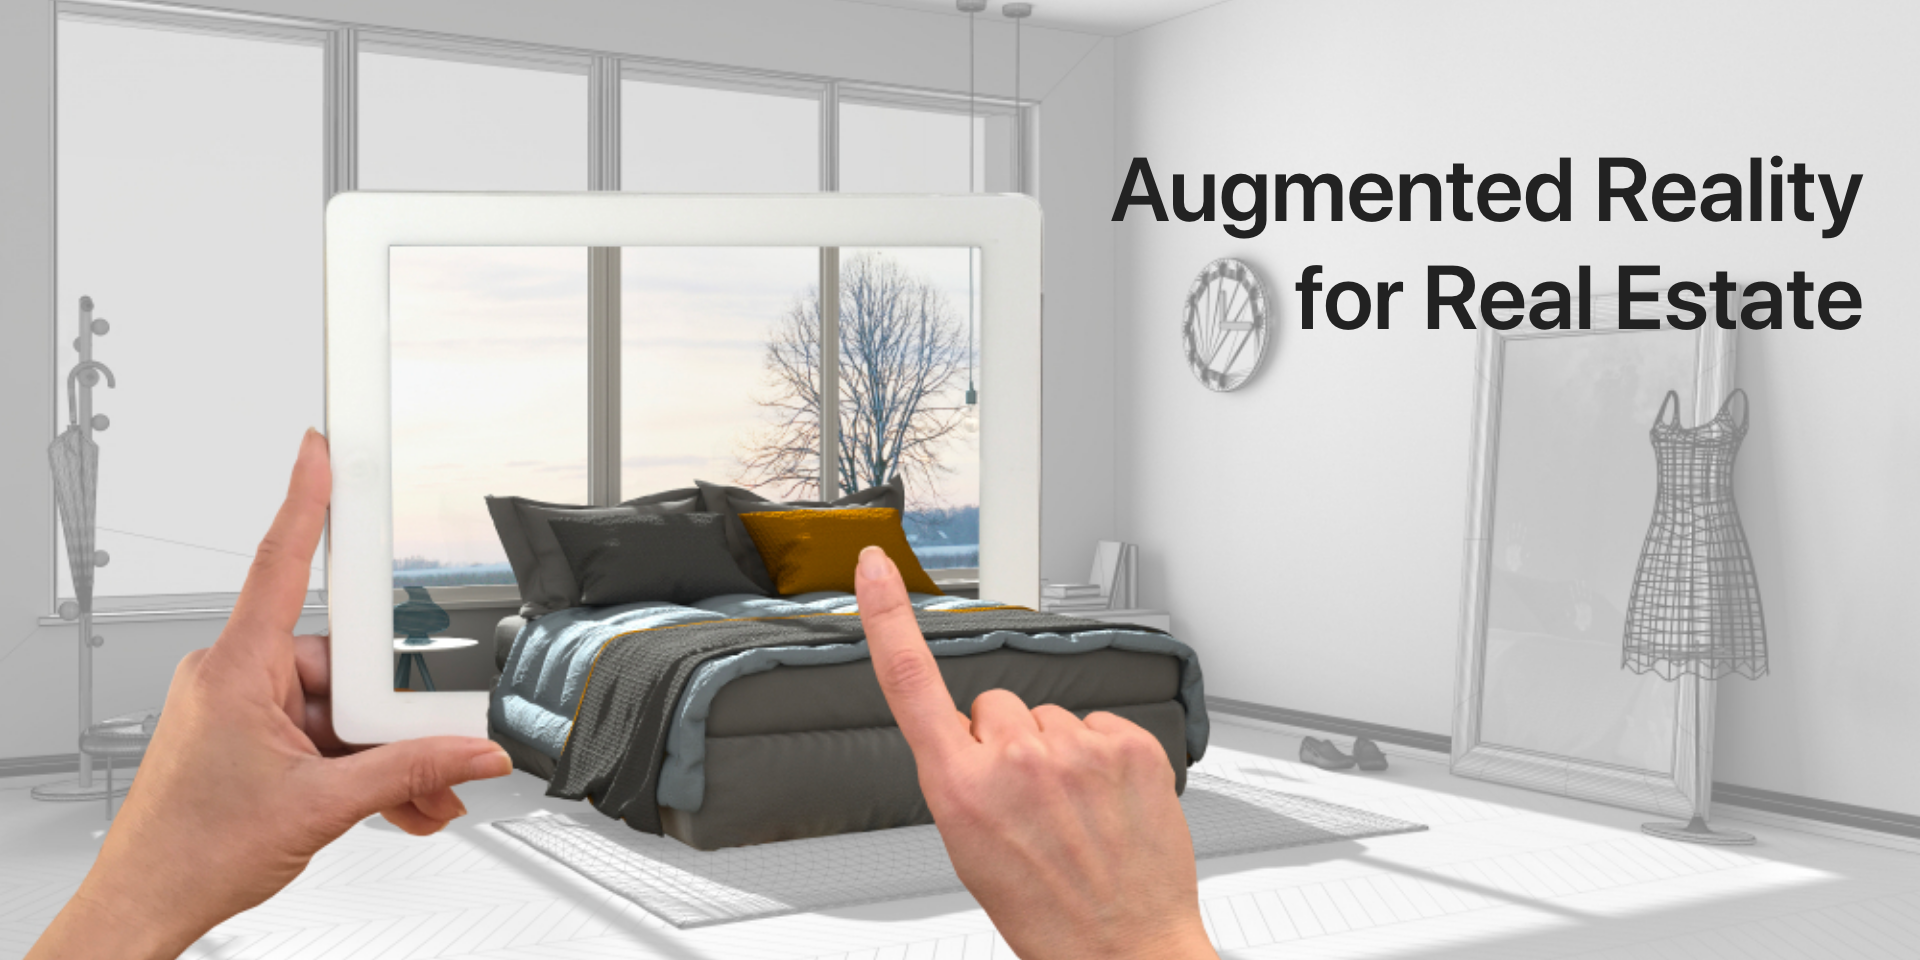 How Augmented Reality making Real Estate a more Organized World